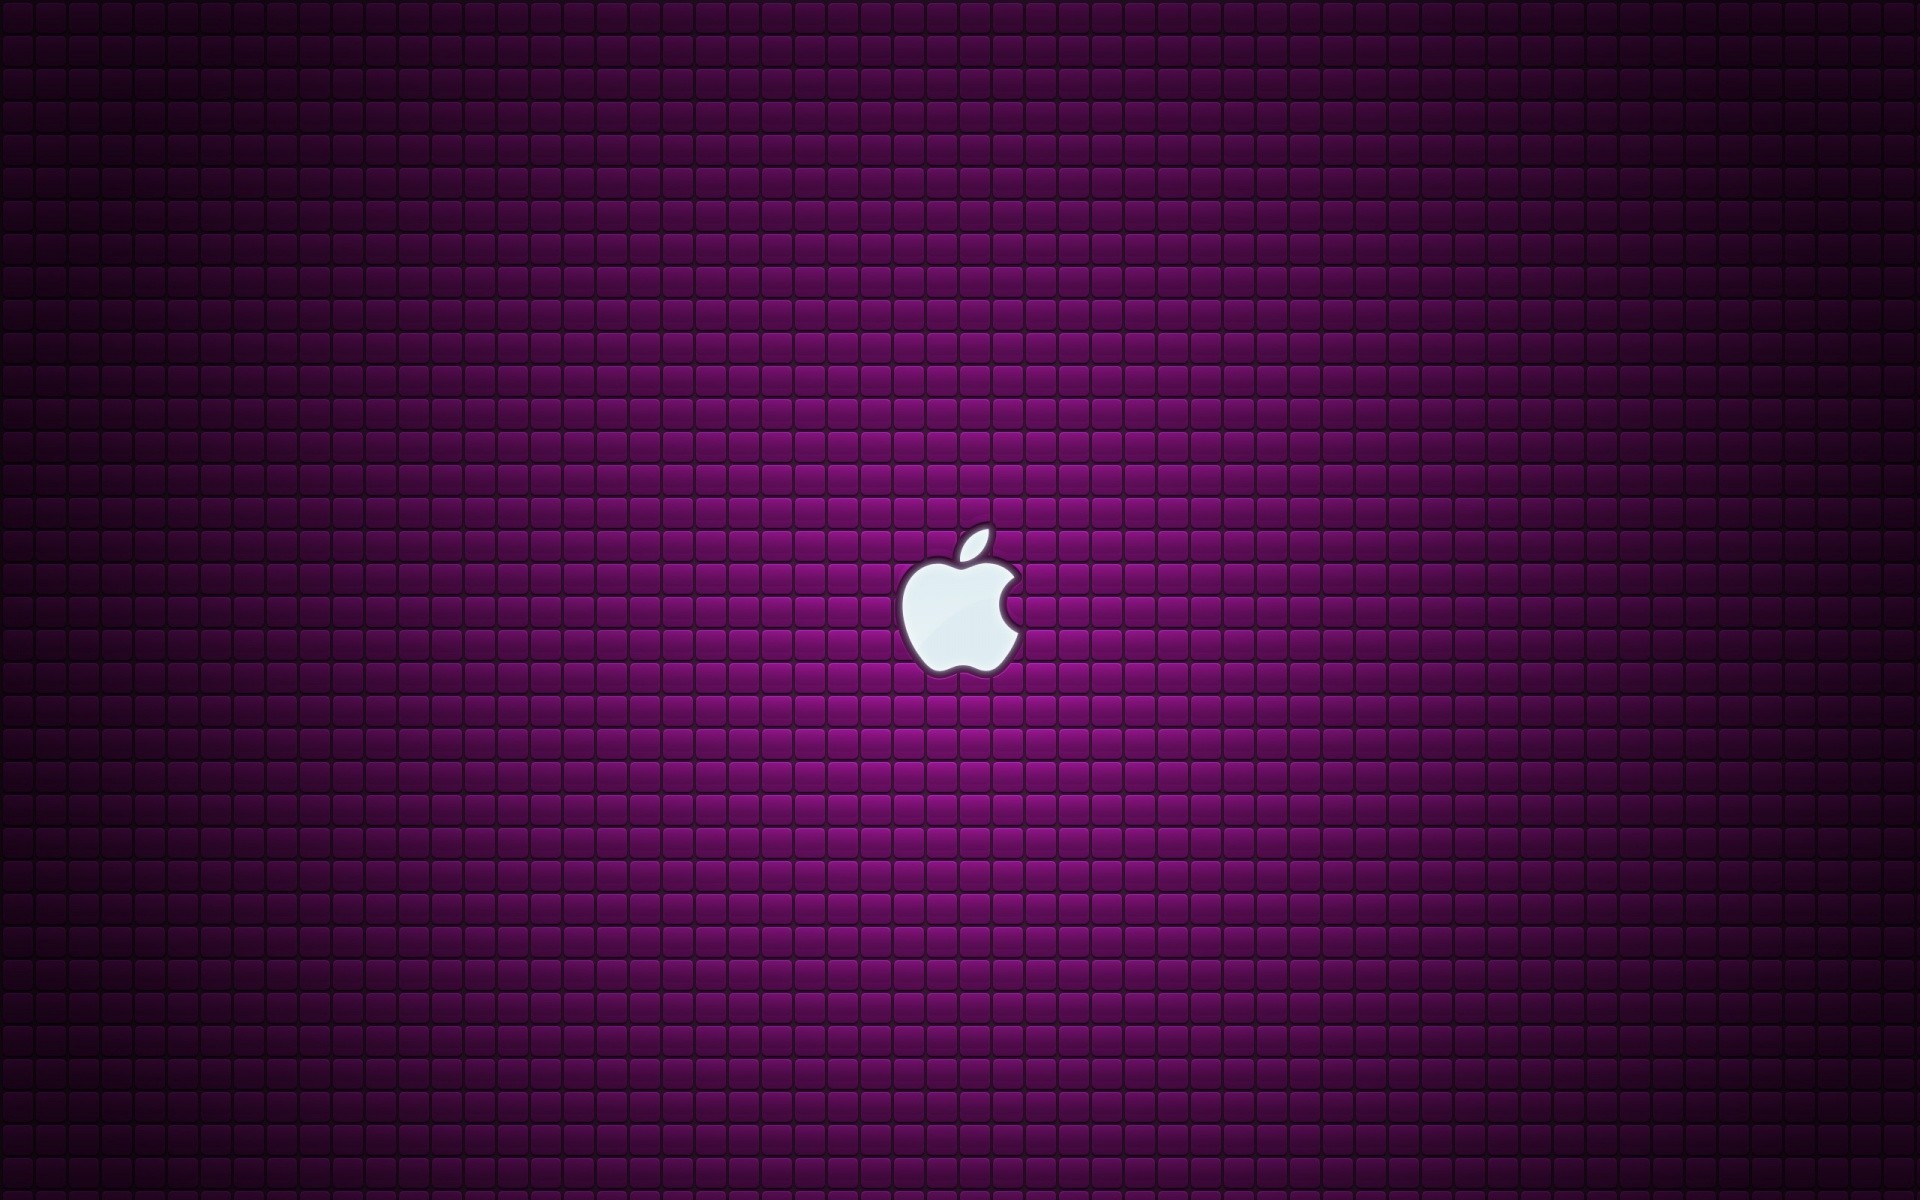 1920x1200 purple apple background desktop wallpapers high definition monitor download  free amazing background photos artwork 1920×1200 Wallpaper HD